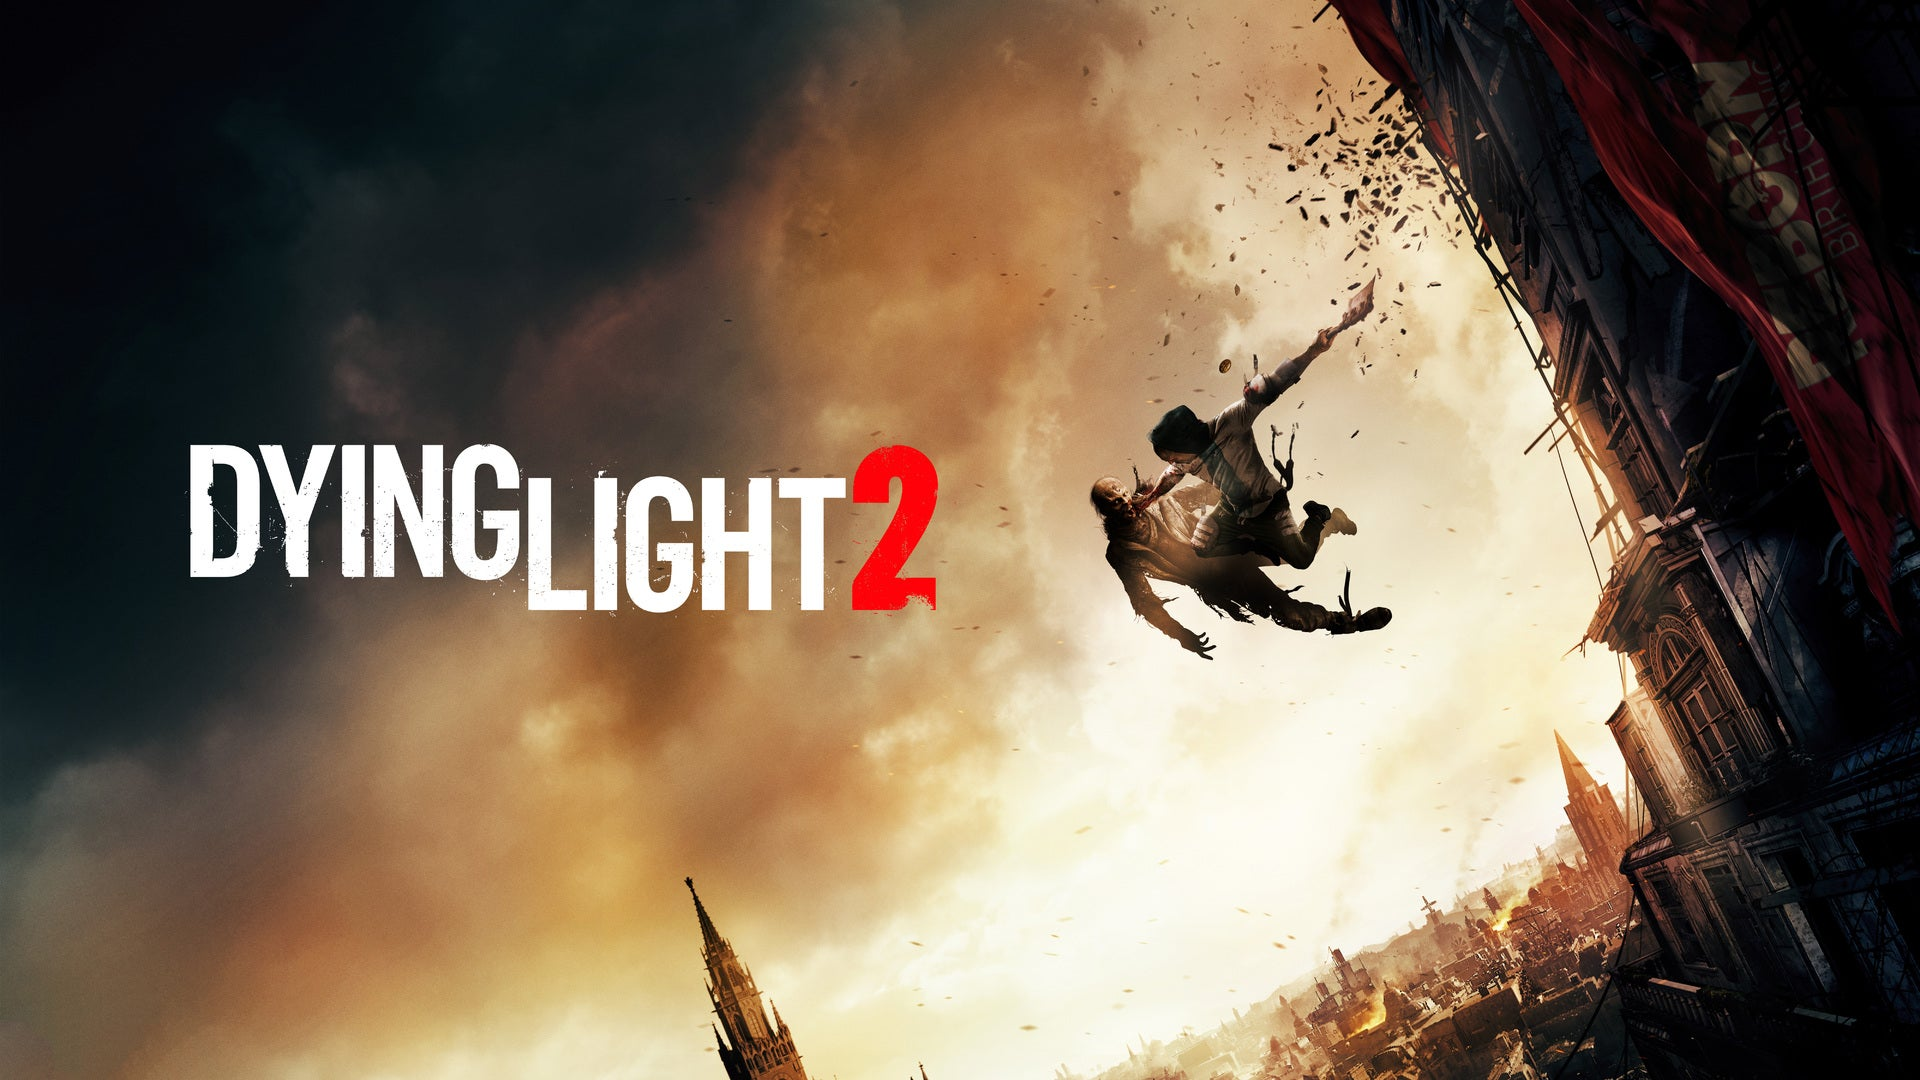 Dying Light 2 Preview News Trailers Release Date And More